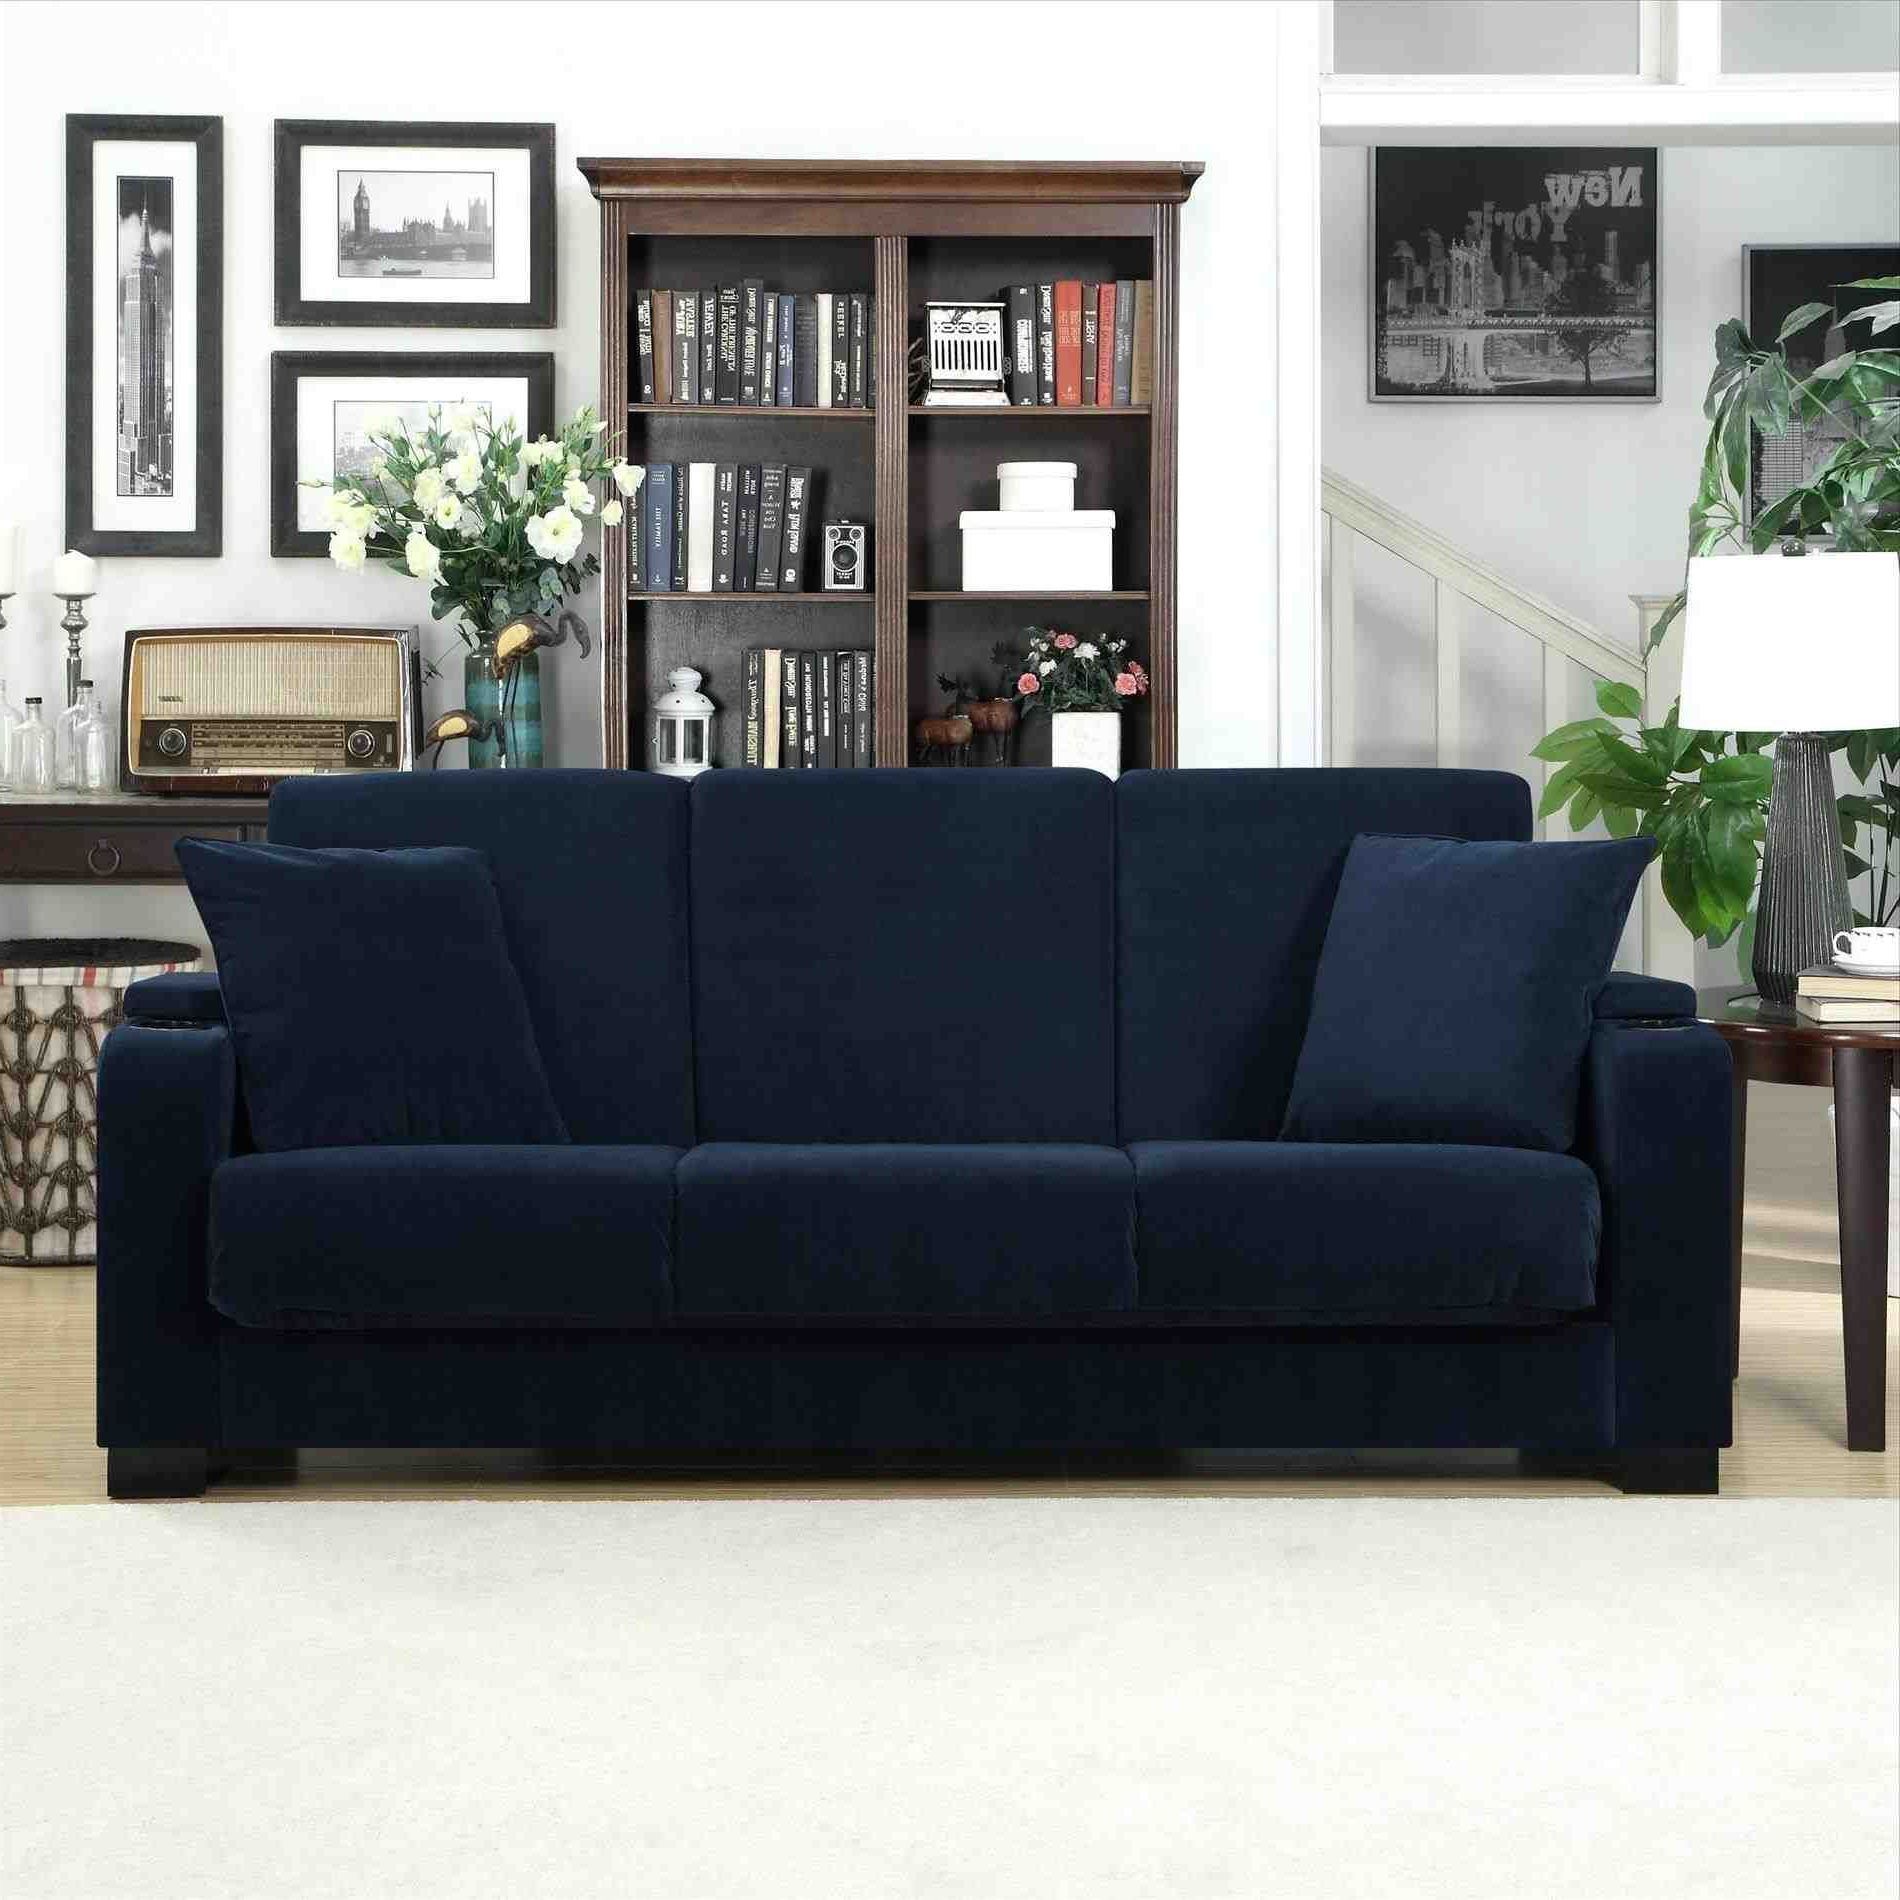 Cheap Sofa Deals Uk – Living Room Chairs Cheap Furniture Prices In Throughout Best And Newest Cheap Sofa Chairs (View 11 of 20)